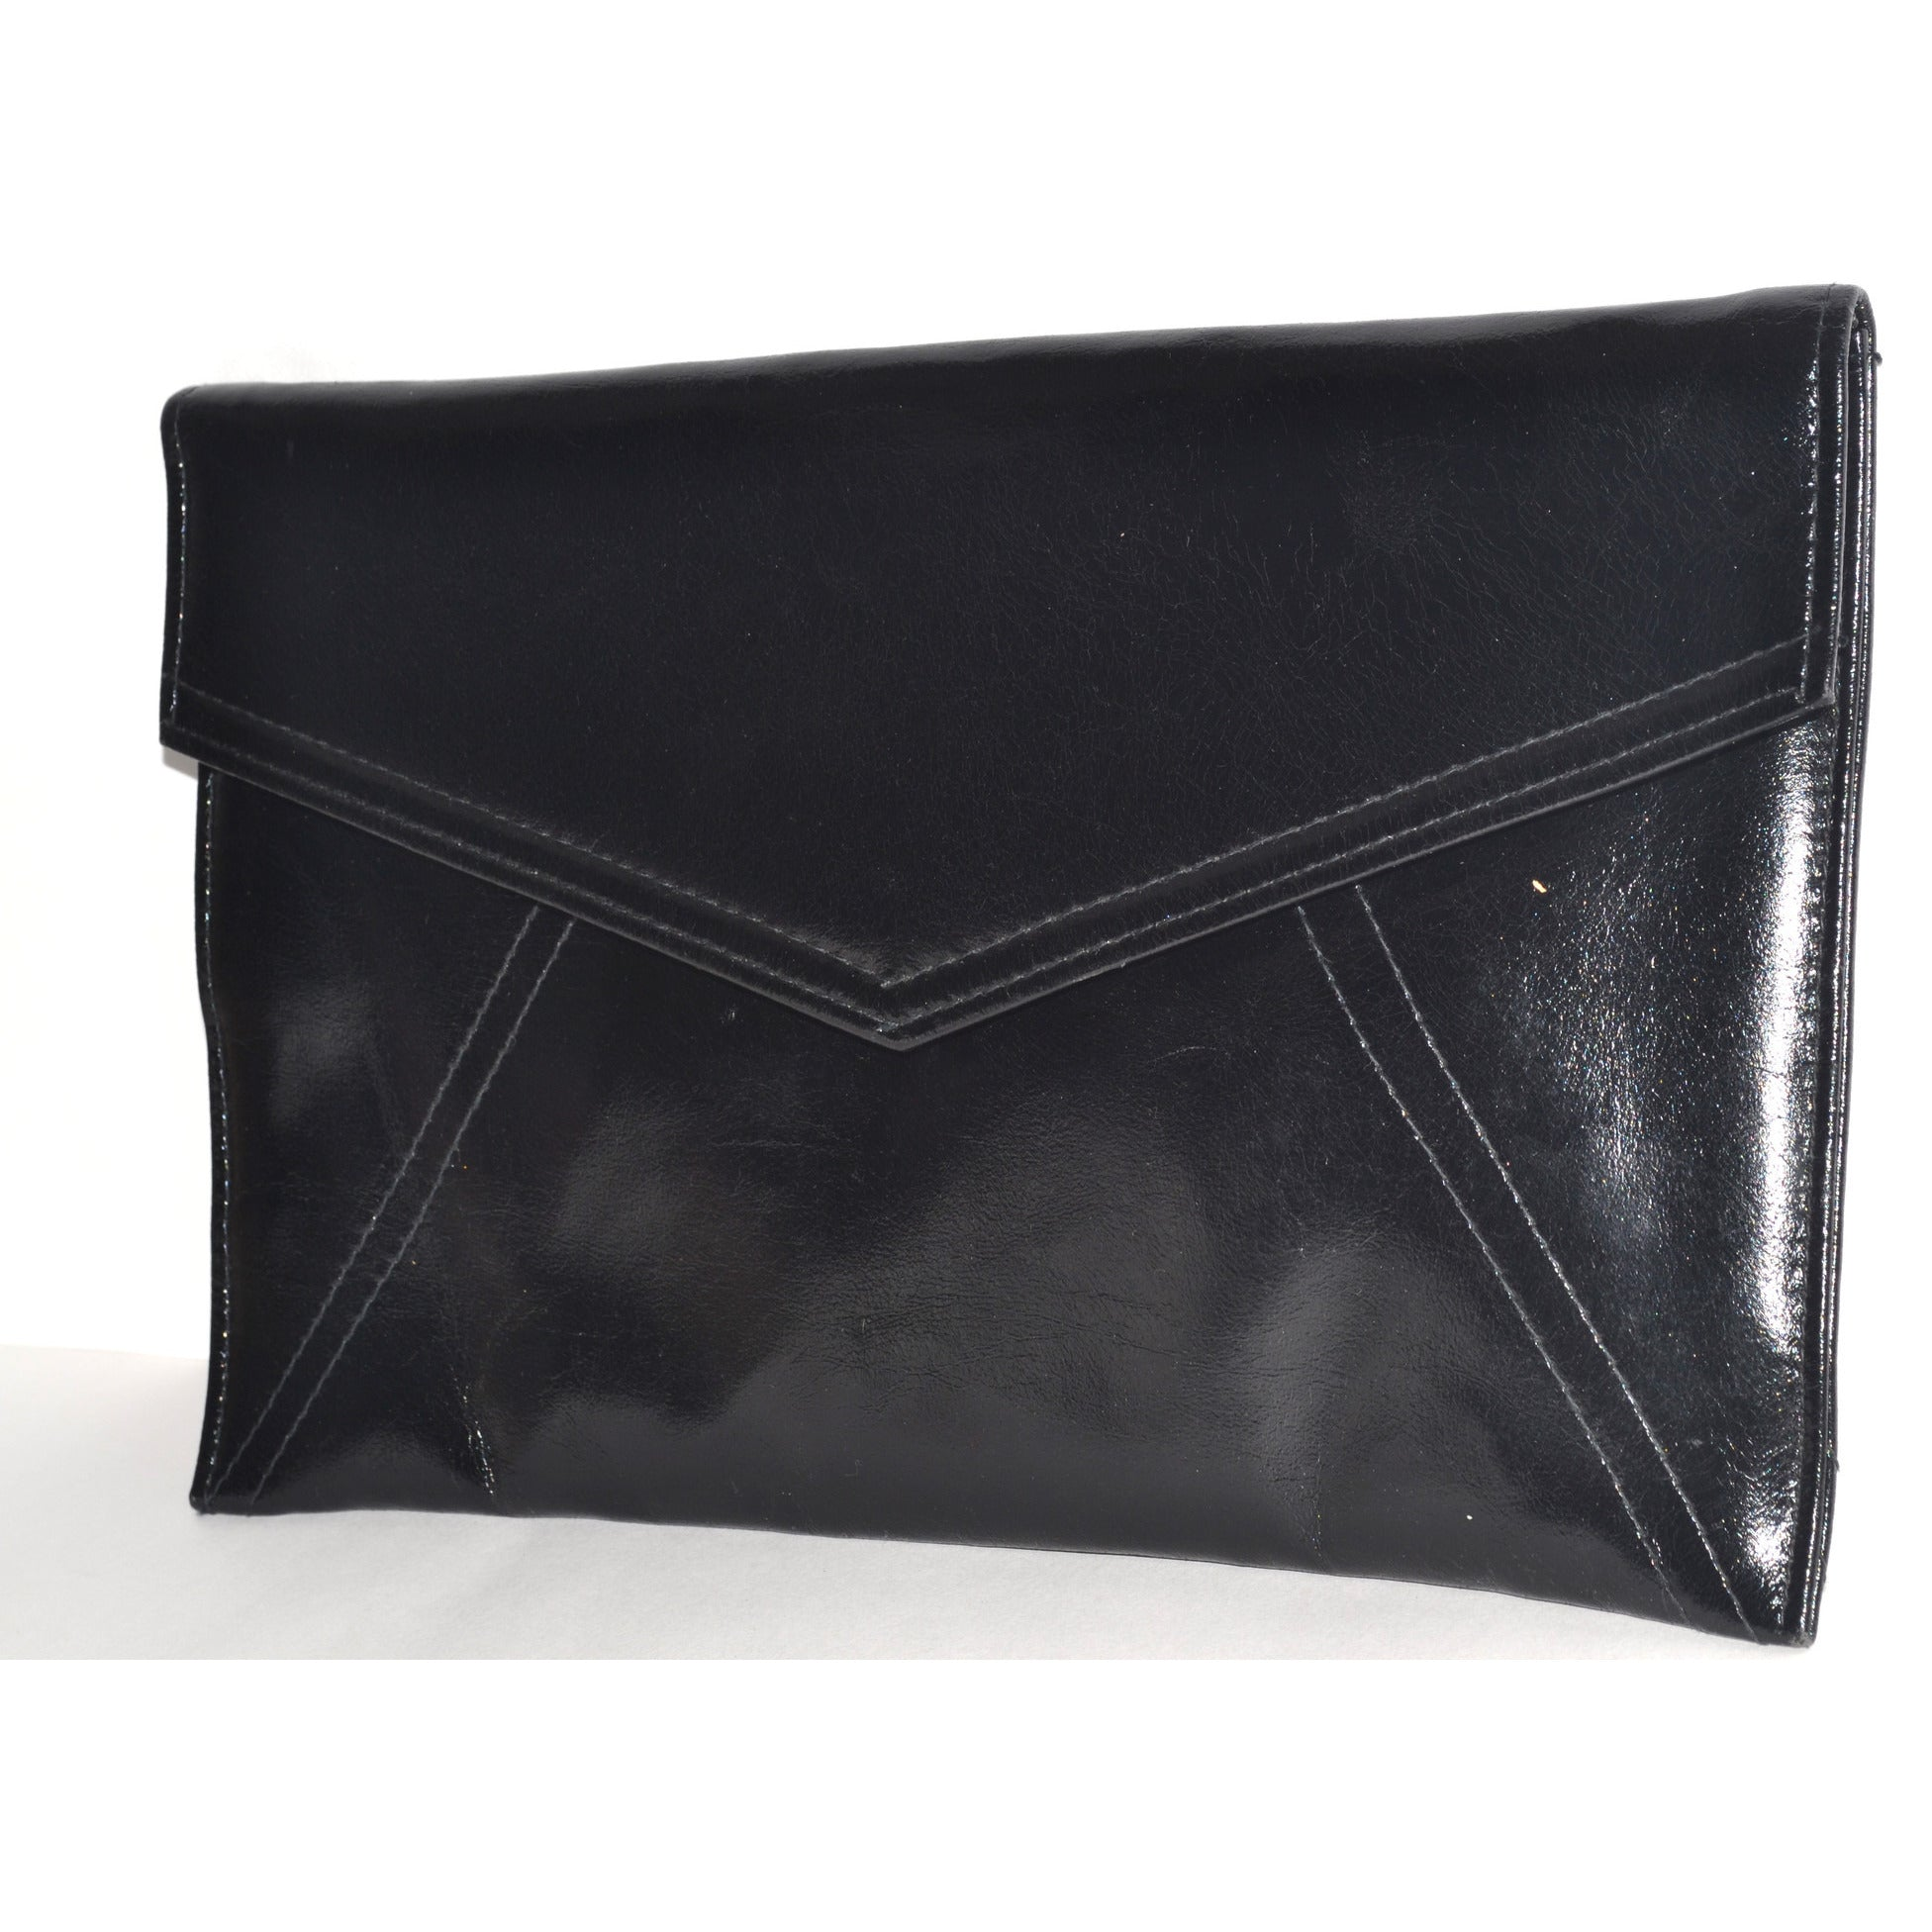 Vintage Black Envelope Clutch Purse By Lord & Taylor